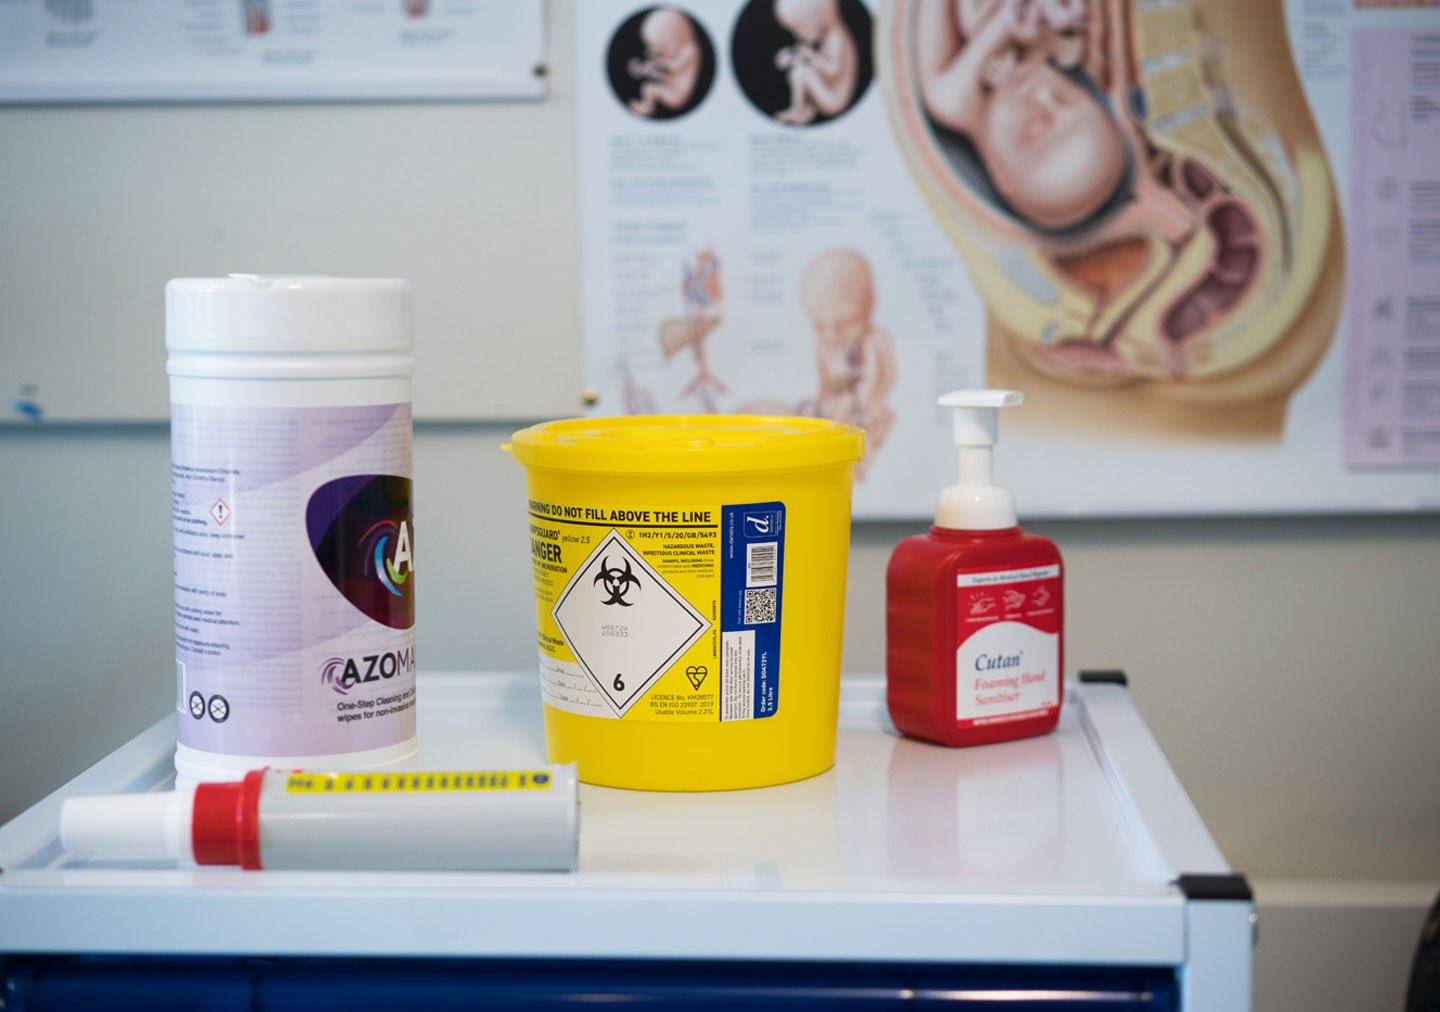 Health and saftey items in the Care Simulation Room